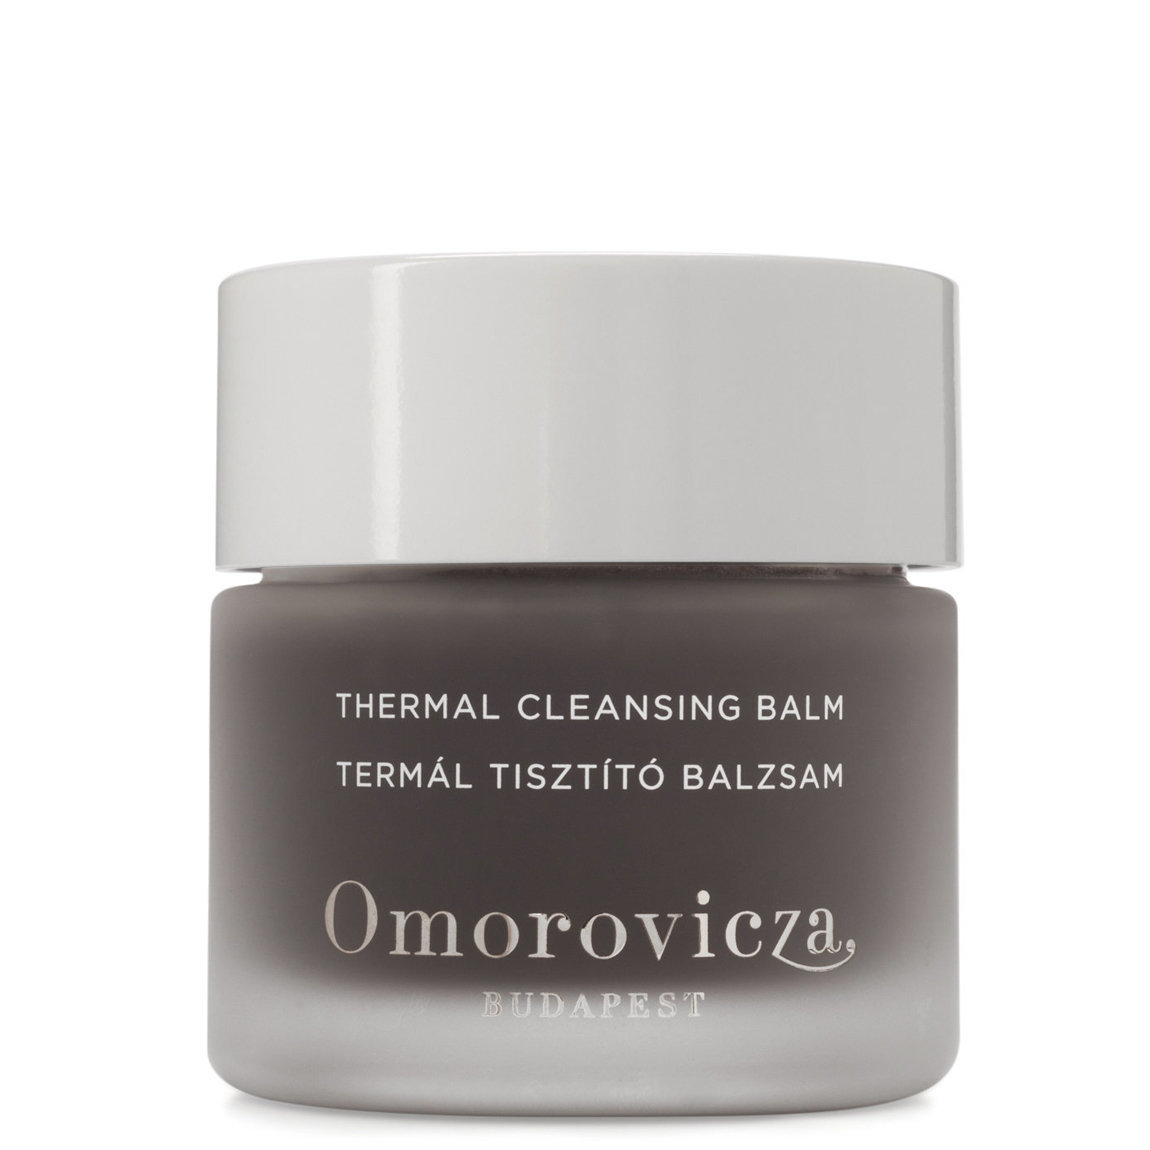 Omorovicza Thermal Cleansing Balm 15 ml product swatch.